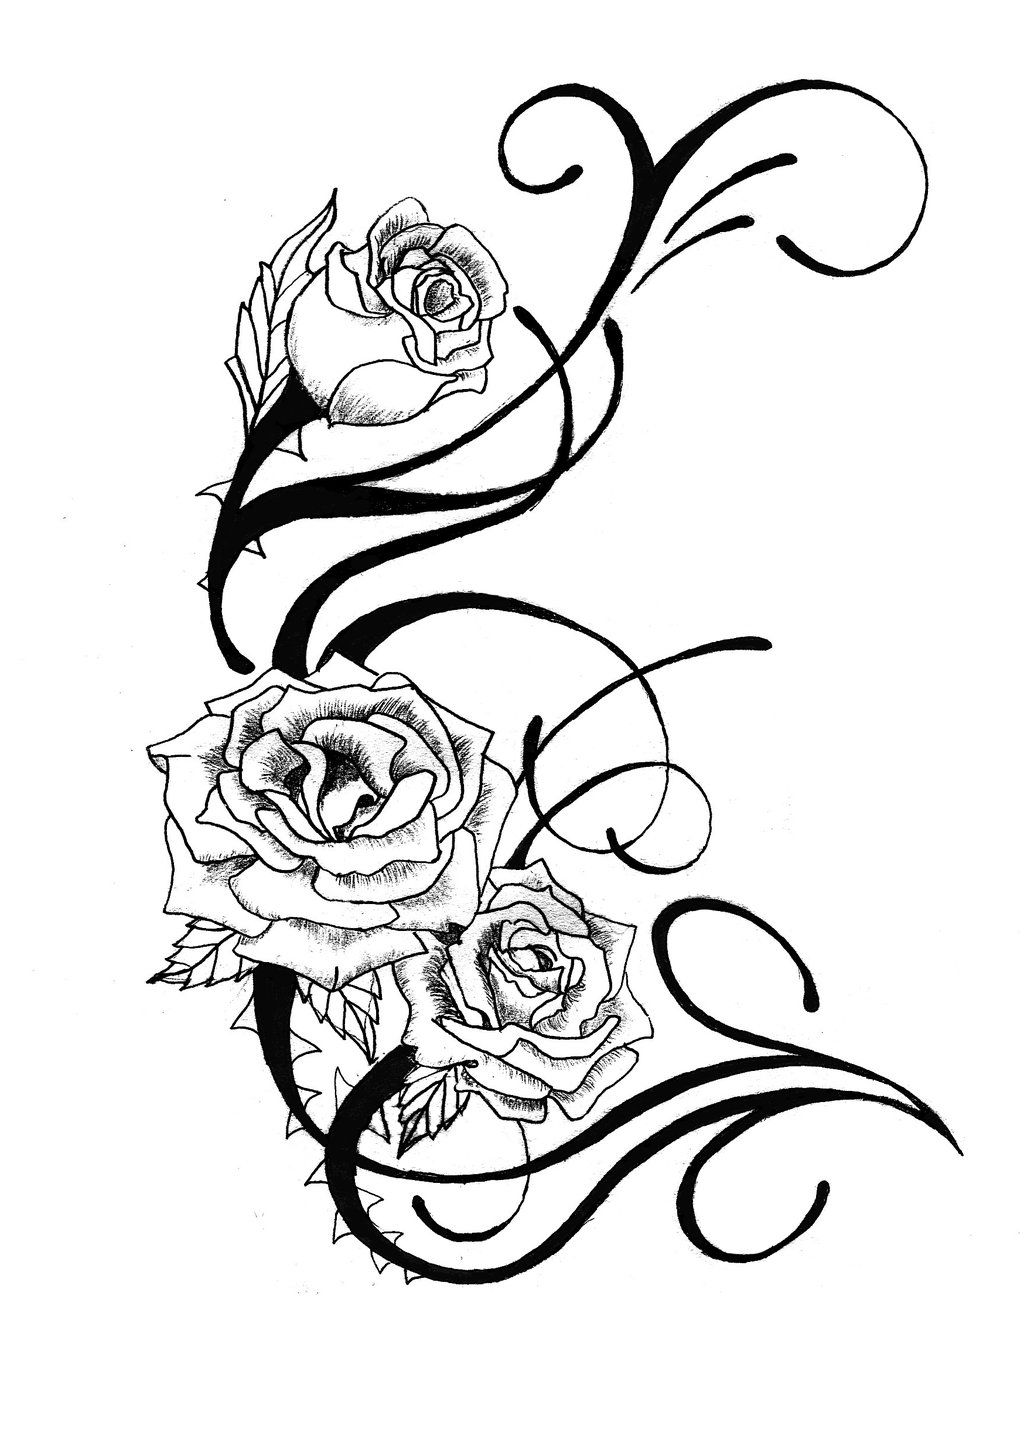 Pencil Drawings Of Hearts And Roses | Free download on ClipArtMag